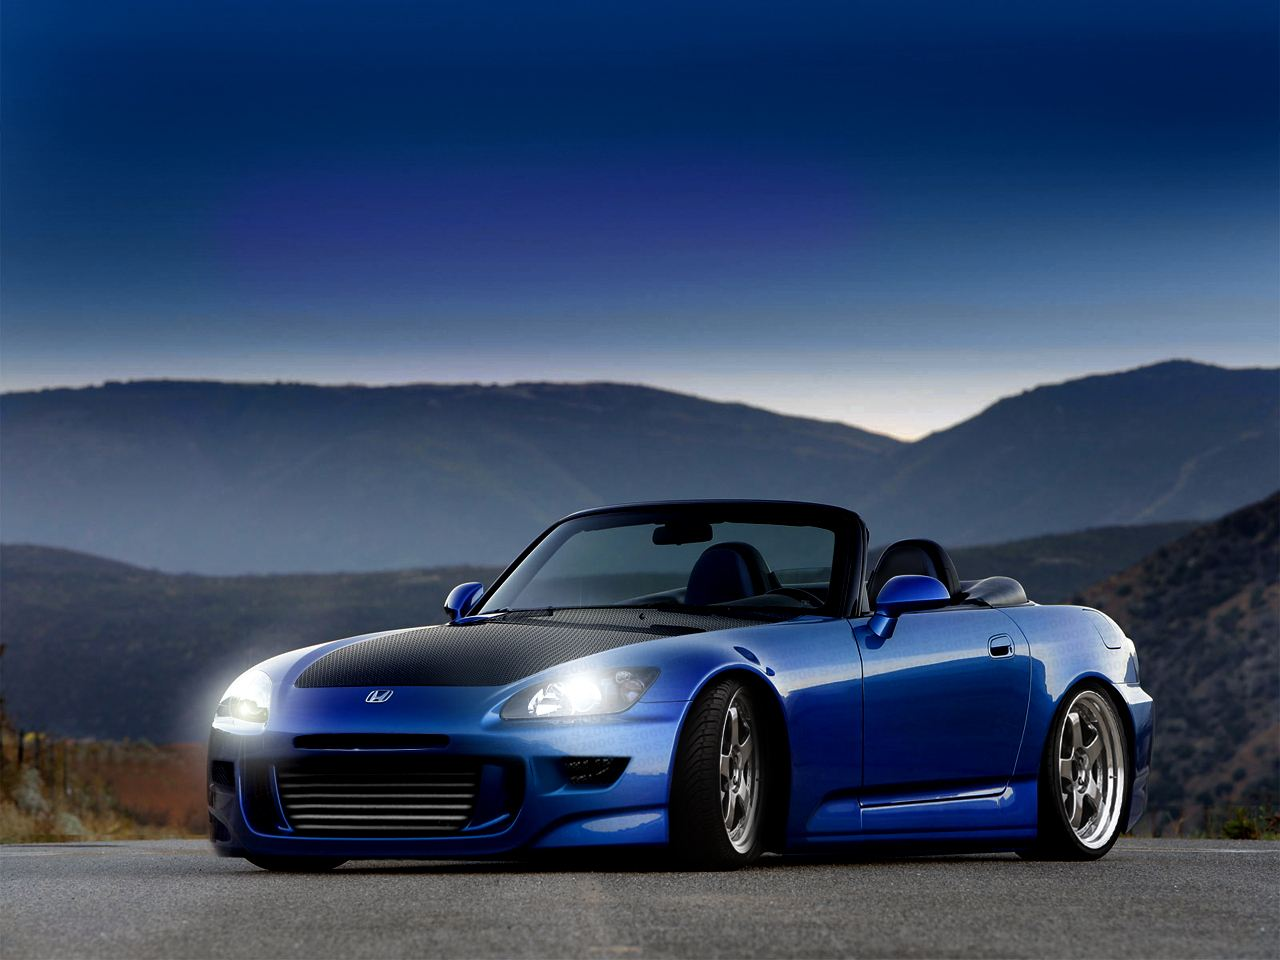 Honda S2000 Wallpaper 4429 Hd Wallpapers in Cars   Imagescicom 1280x960